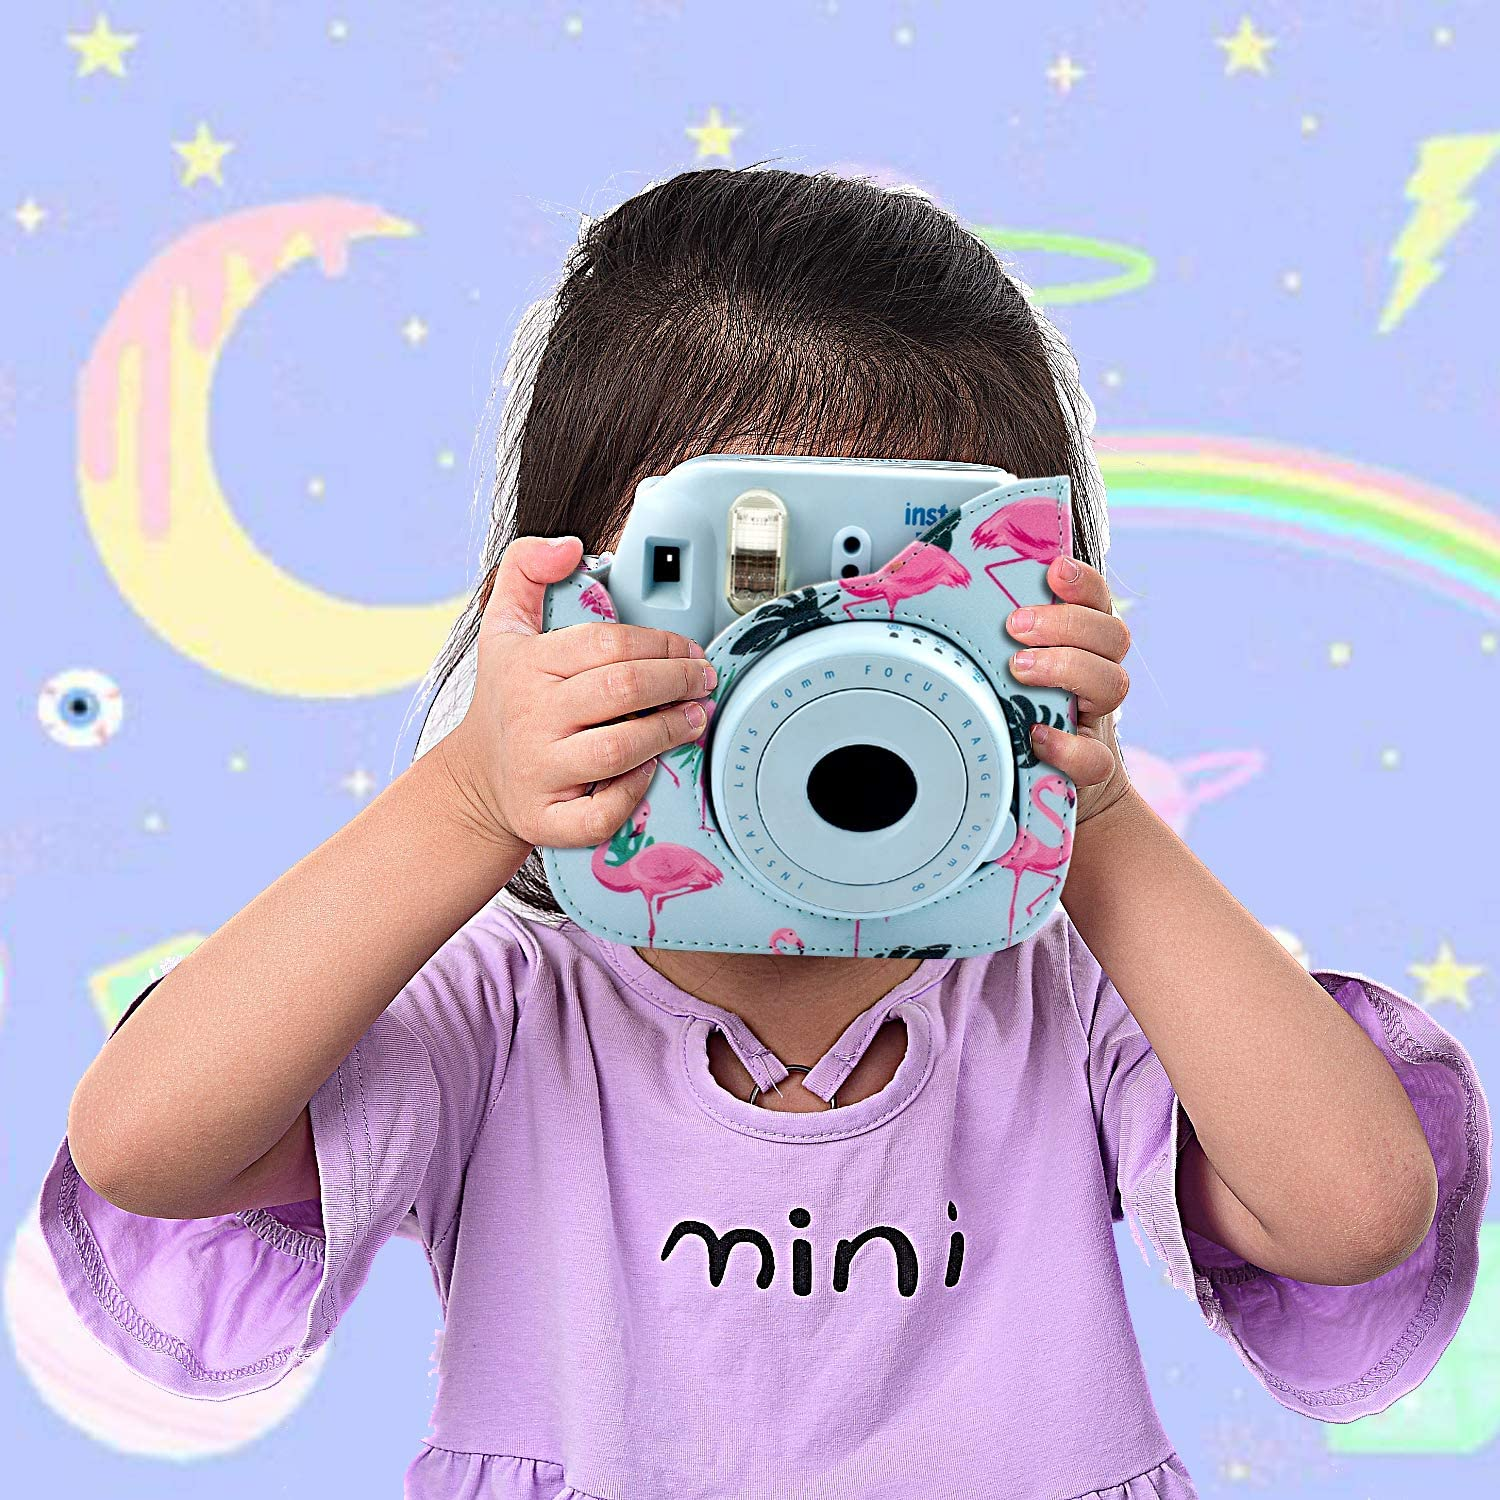 Owls on Tree,9 Items Kit Strap/&Other Accessories Filters by SAIKA Bundle Pack Include Albums Case /& Accessories Compatible with Fujifilm Instax Mini 9//8//8+ Instant Polaroid Film Camera